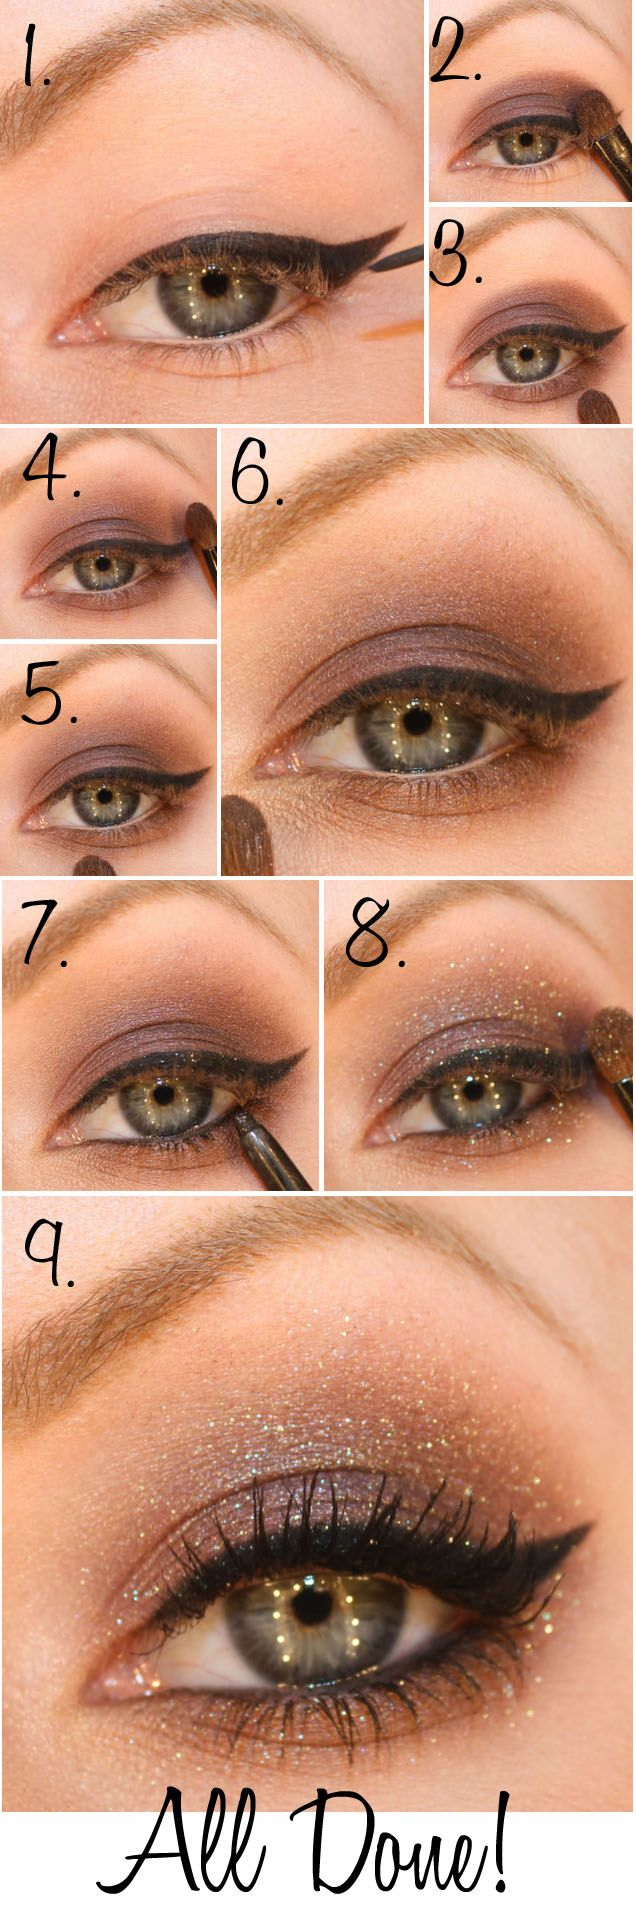 Amanda Seyfried inspired eye shadow tutorial. I only wish I could get my liquid eyeliner to look this perfect.